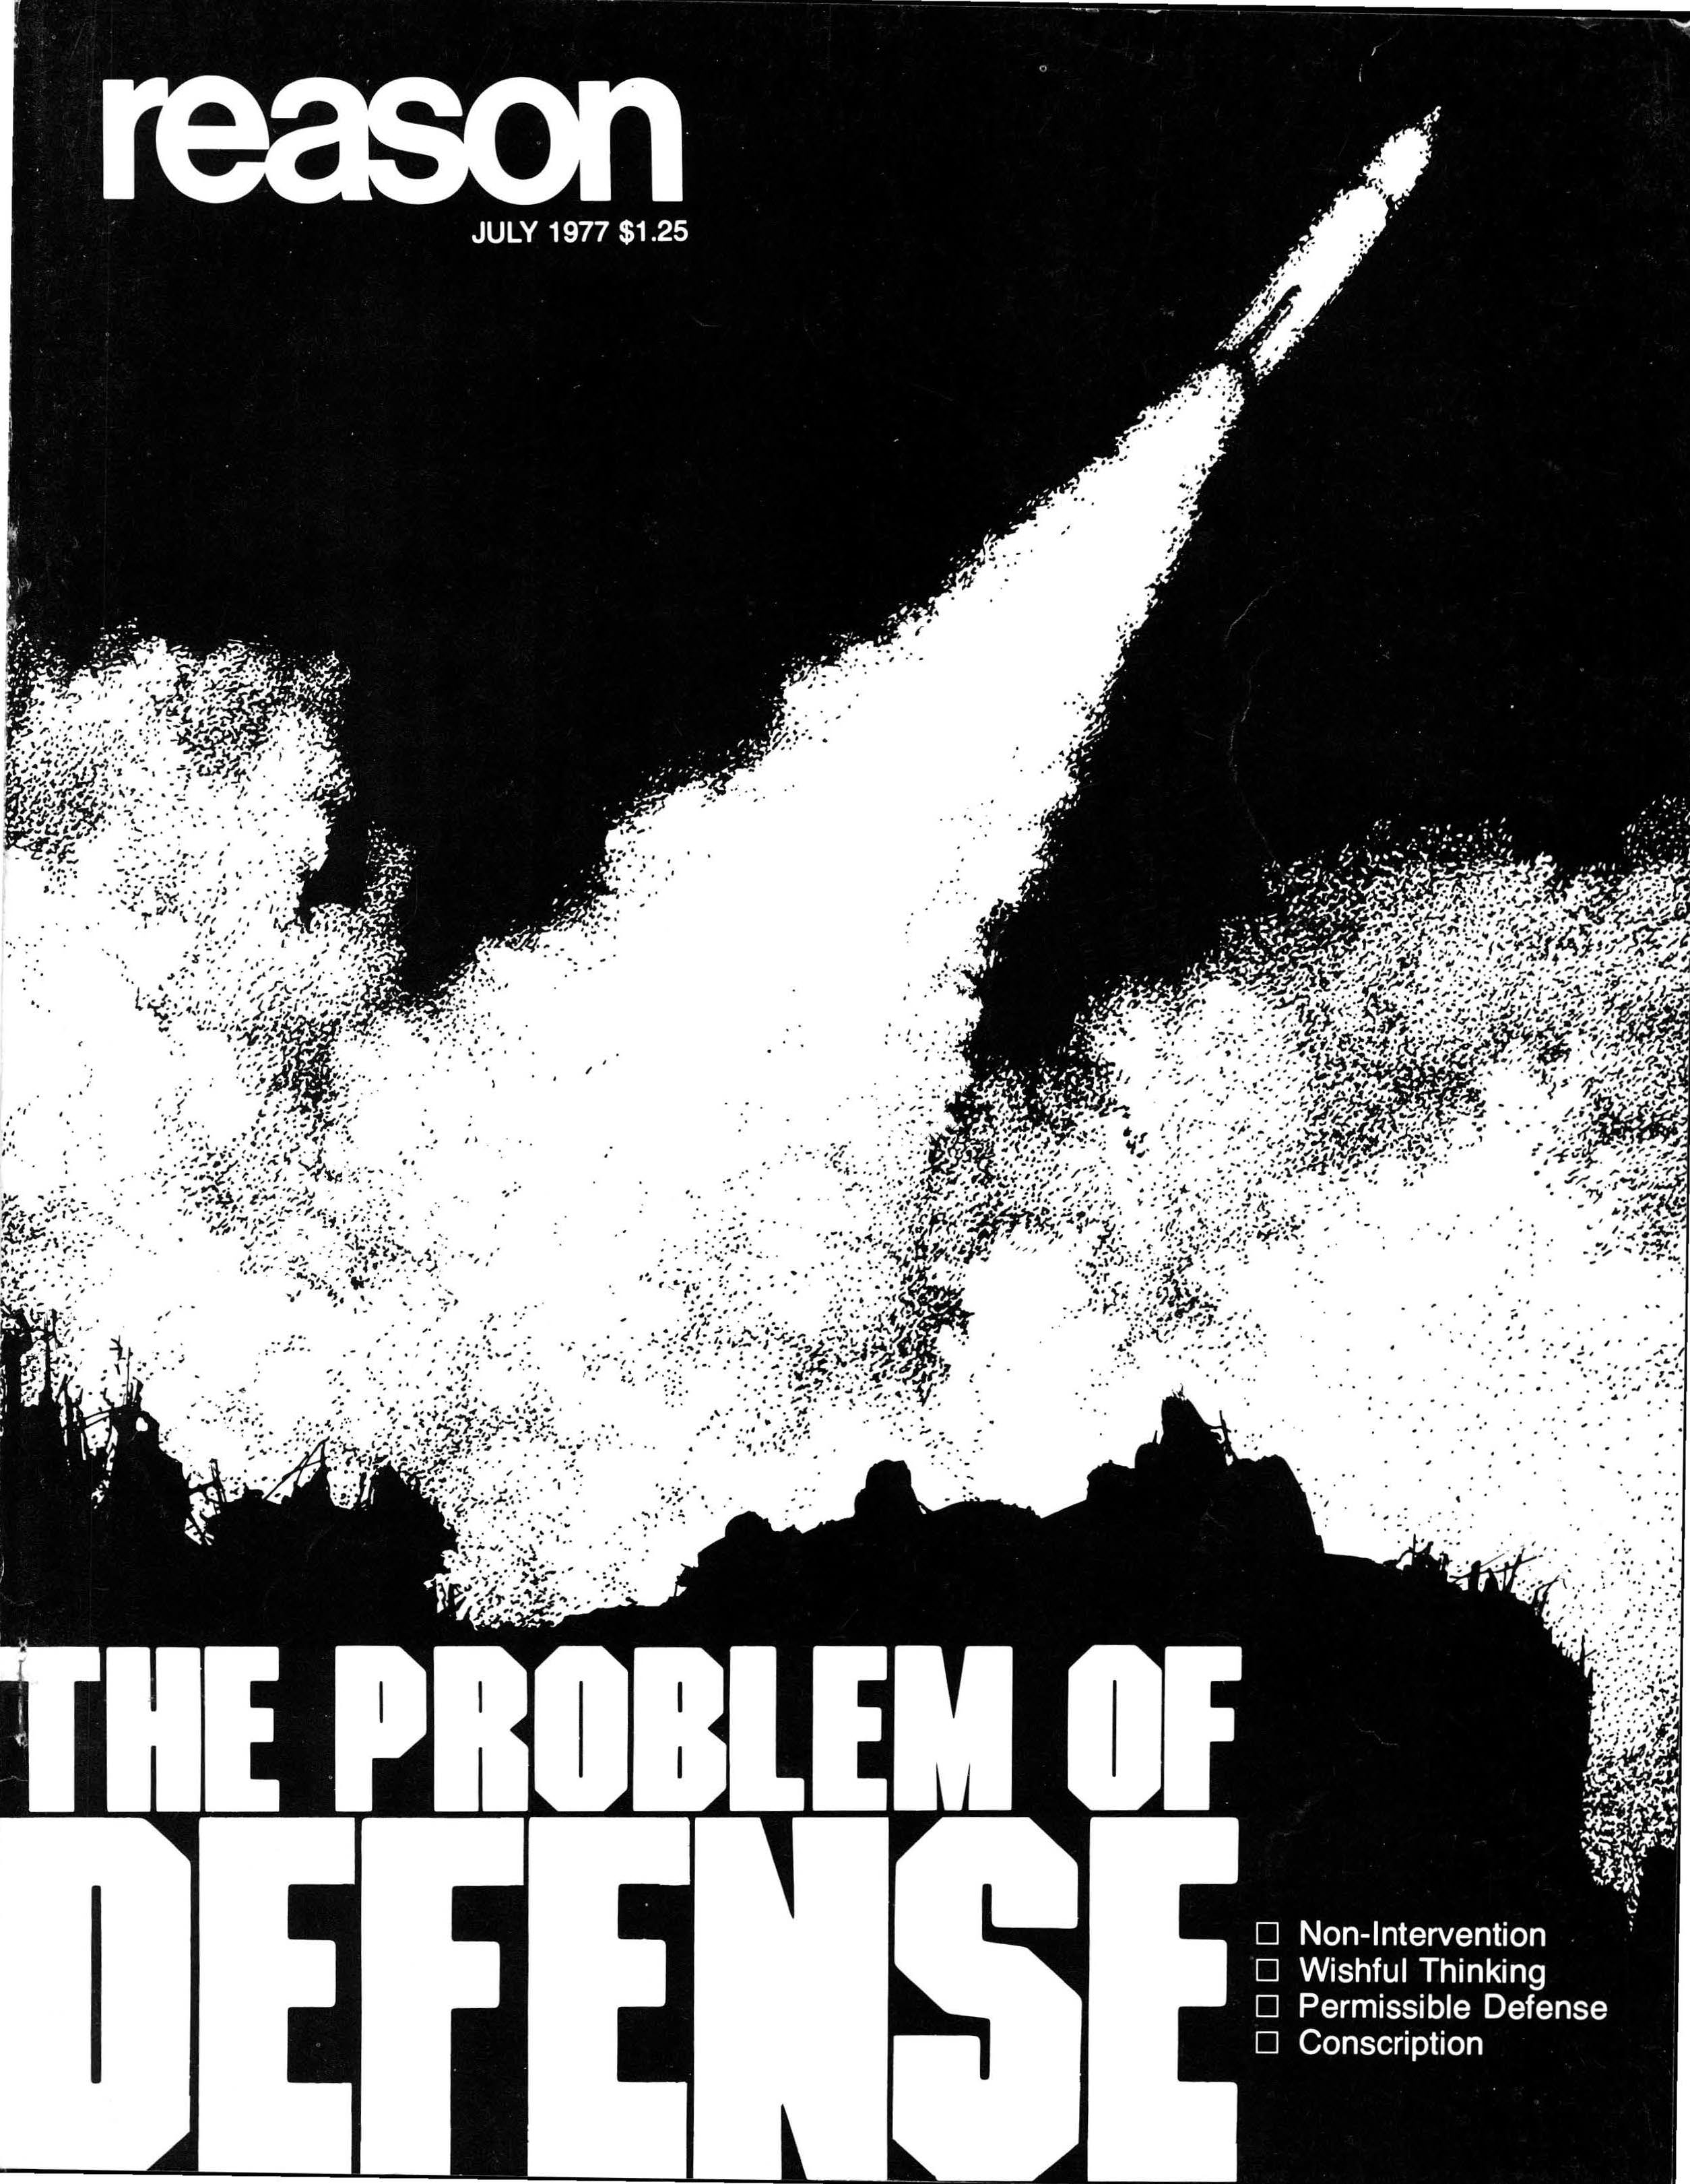 Reason Magazine, July 1977 cover image